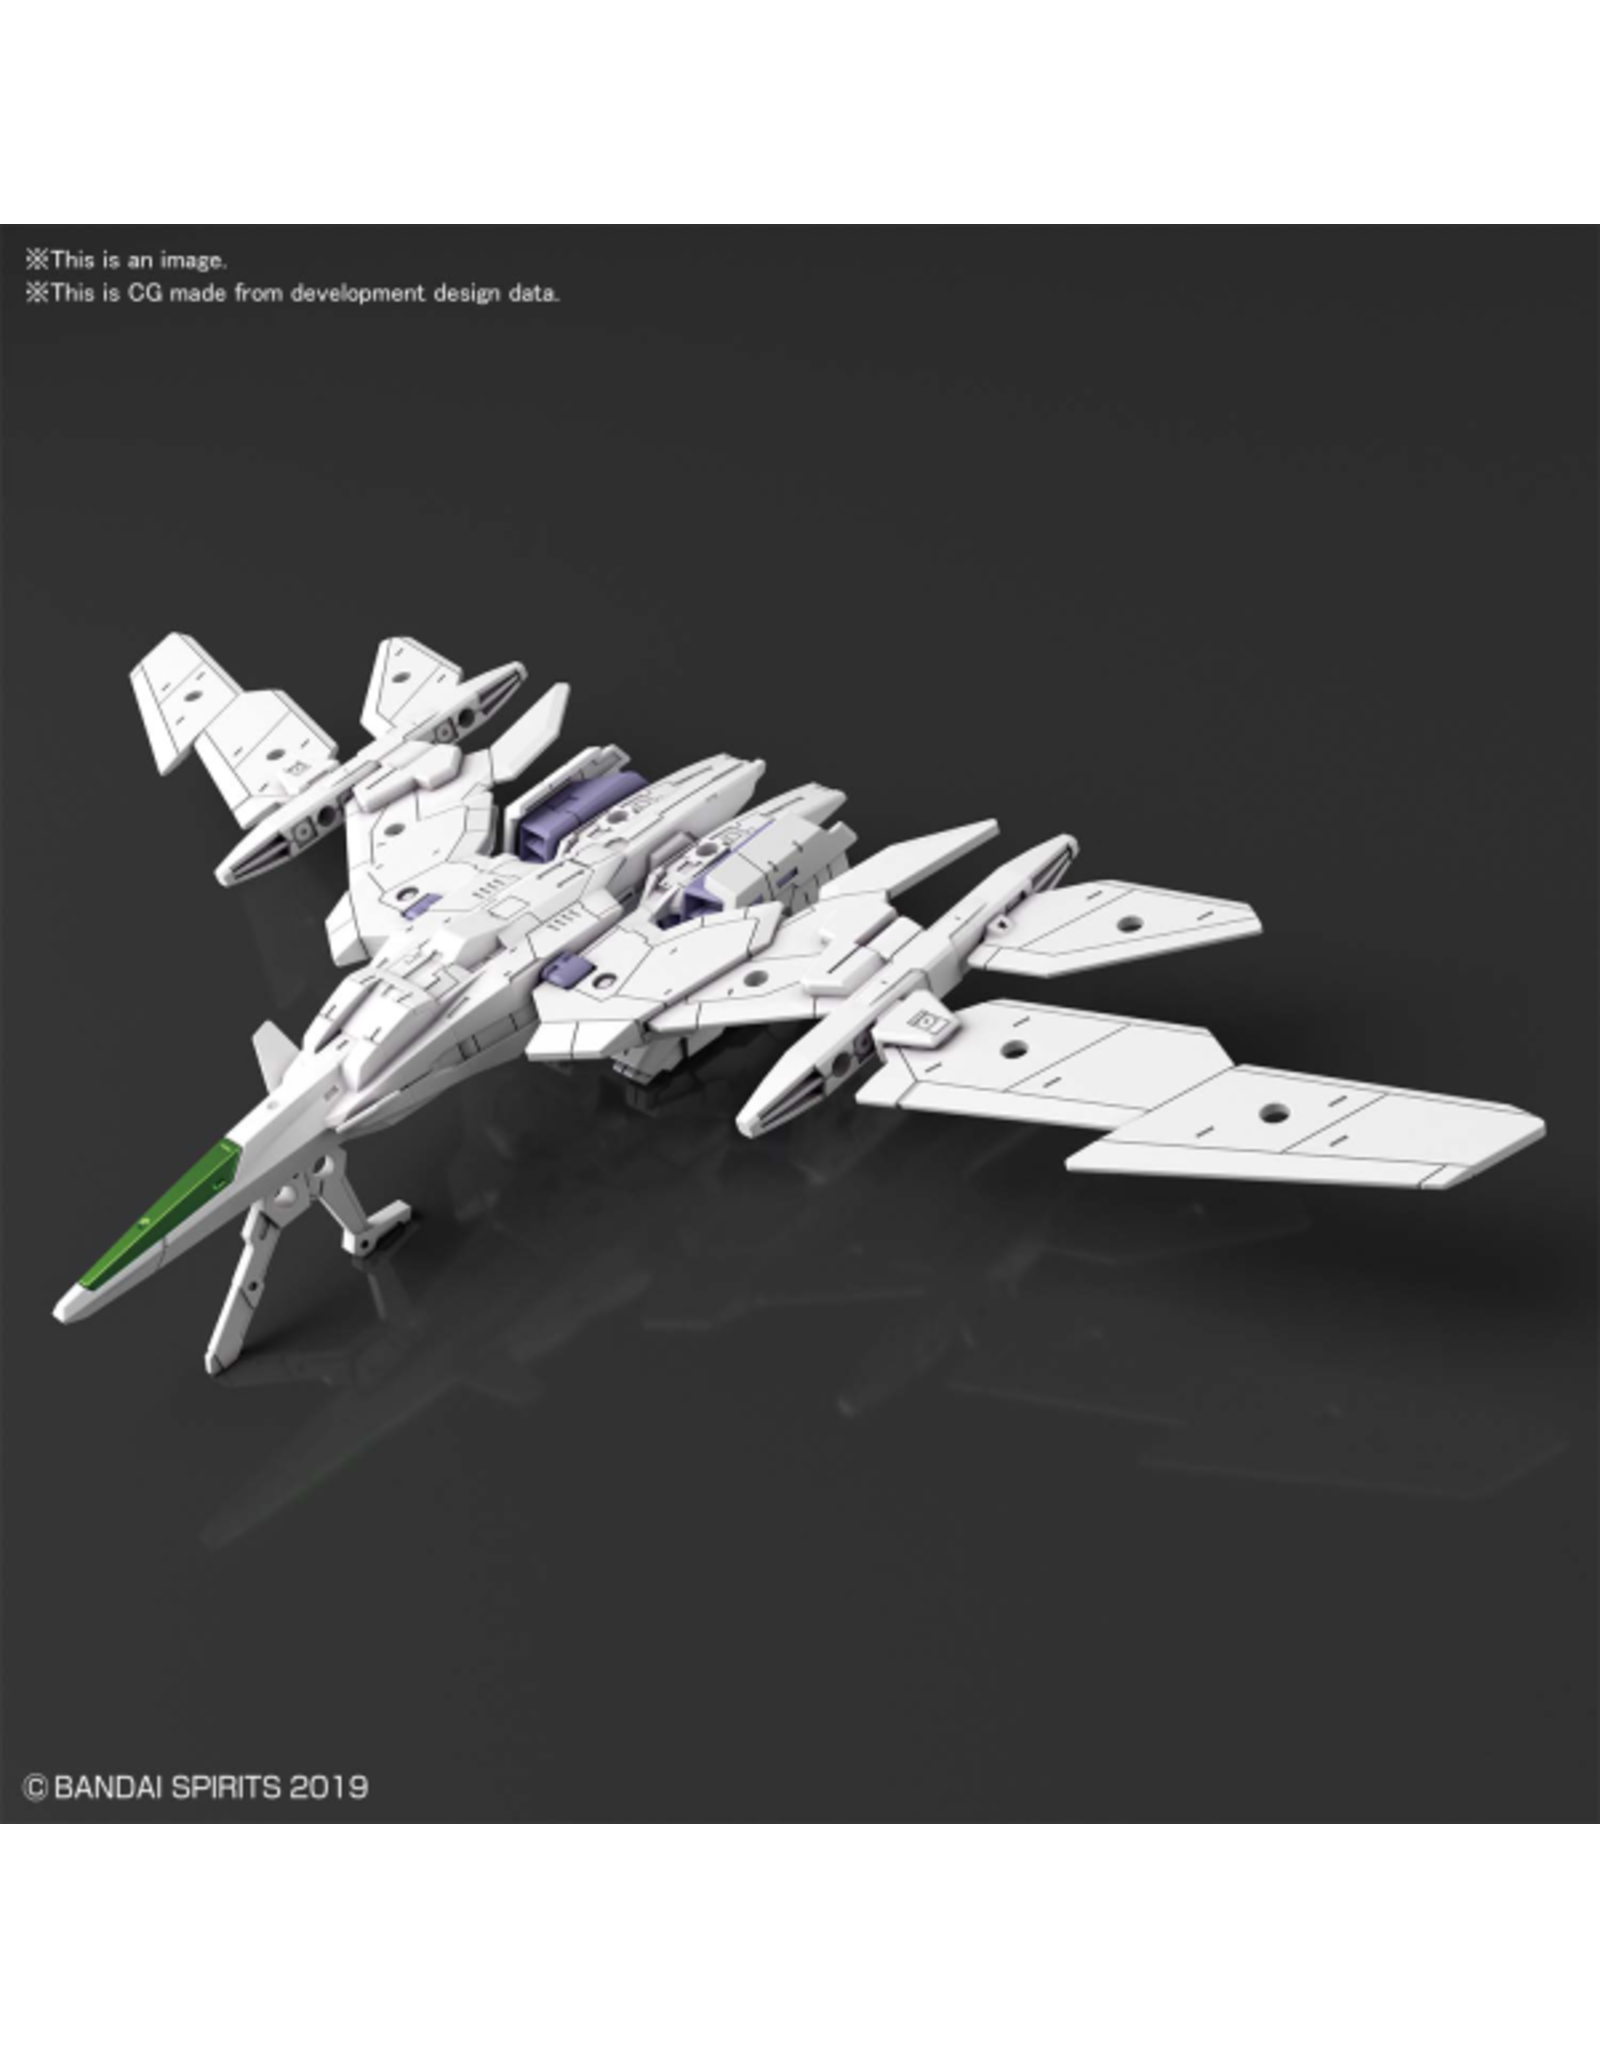 BANDAI 30MM 1/144 EXTENDED ARMAMENT VEHICLE (AIR FIGHTER Ver.) [WHITE]